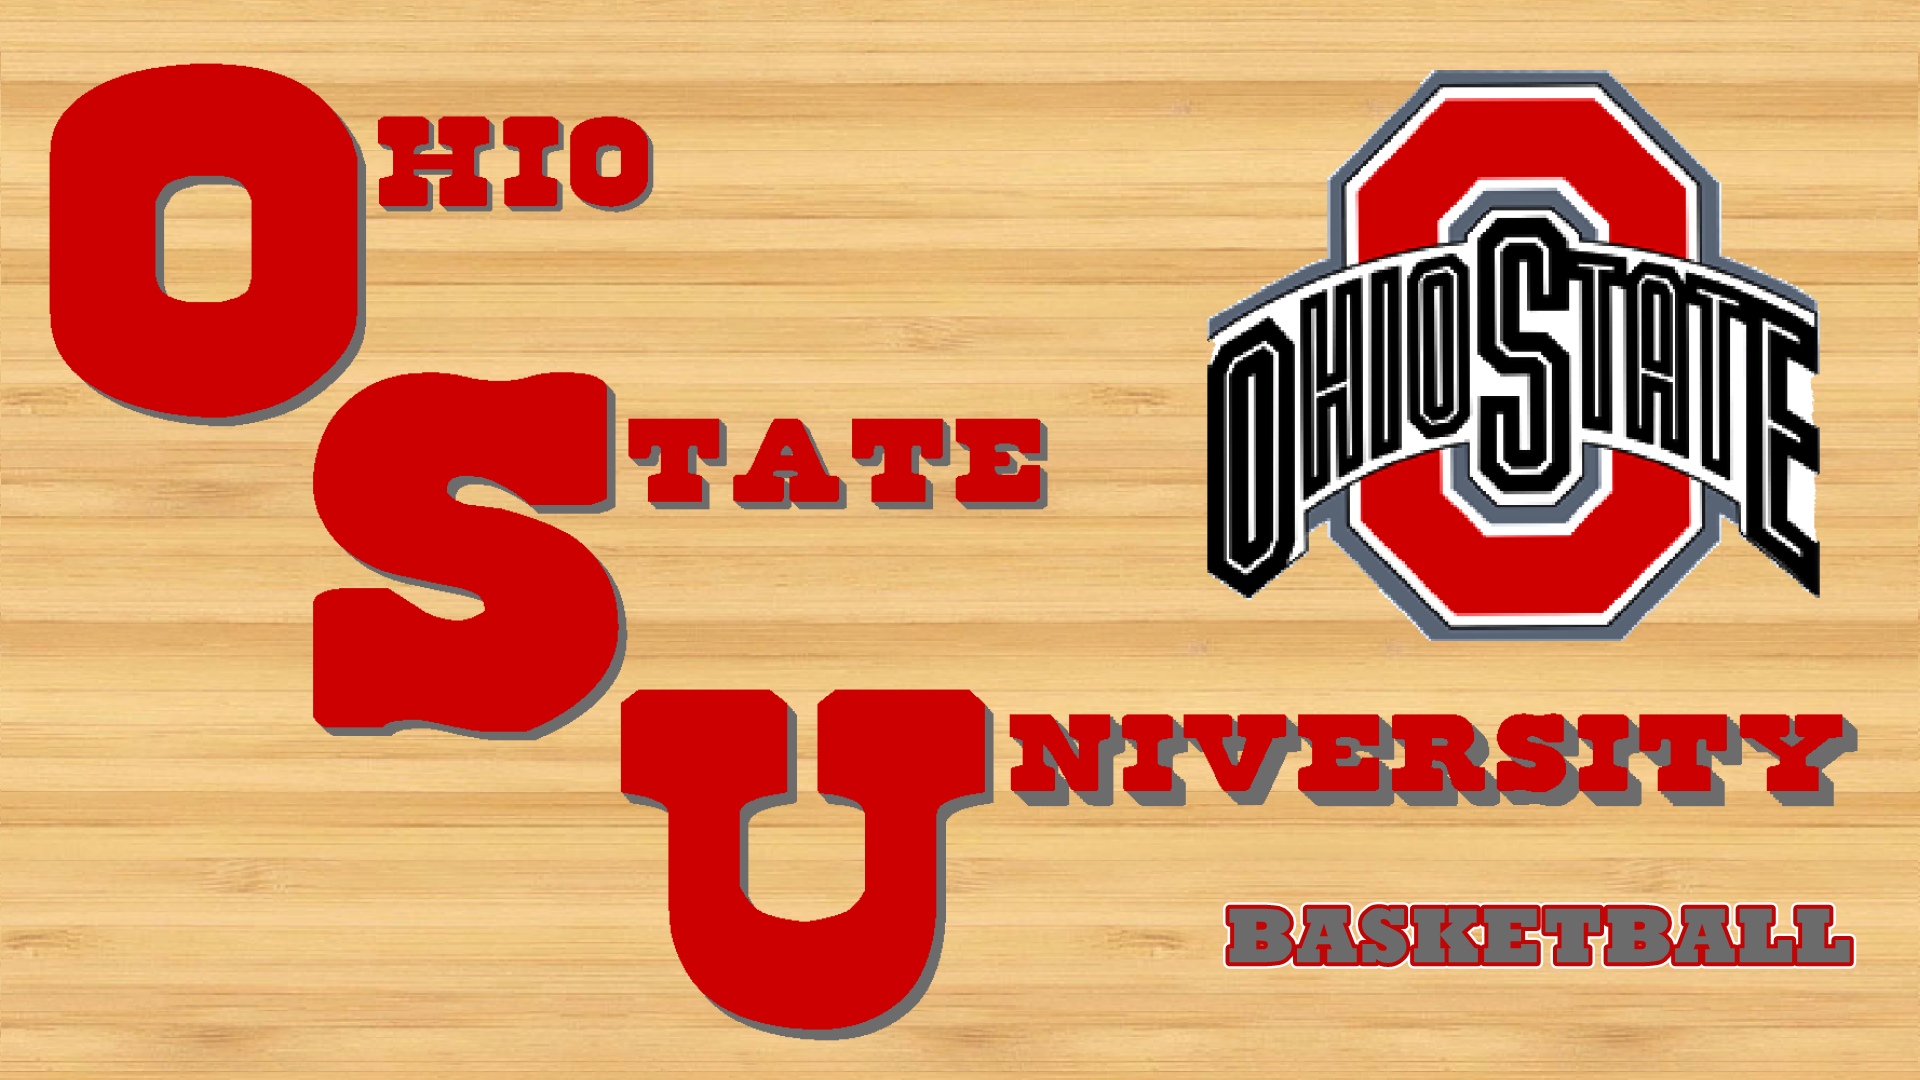 OHIO STATE universitas bola basket